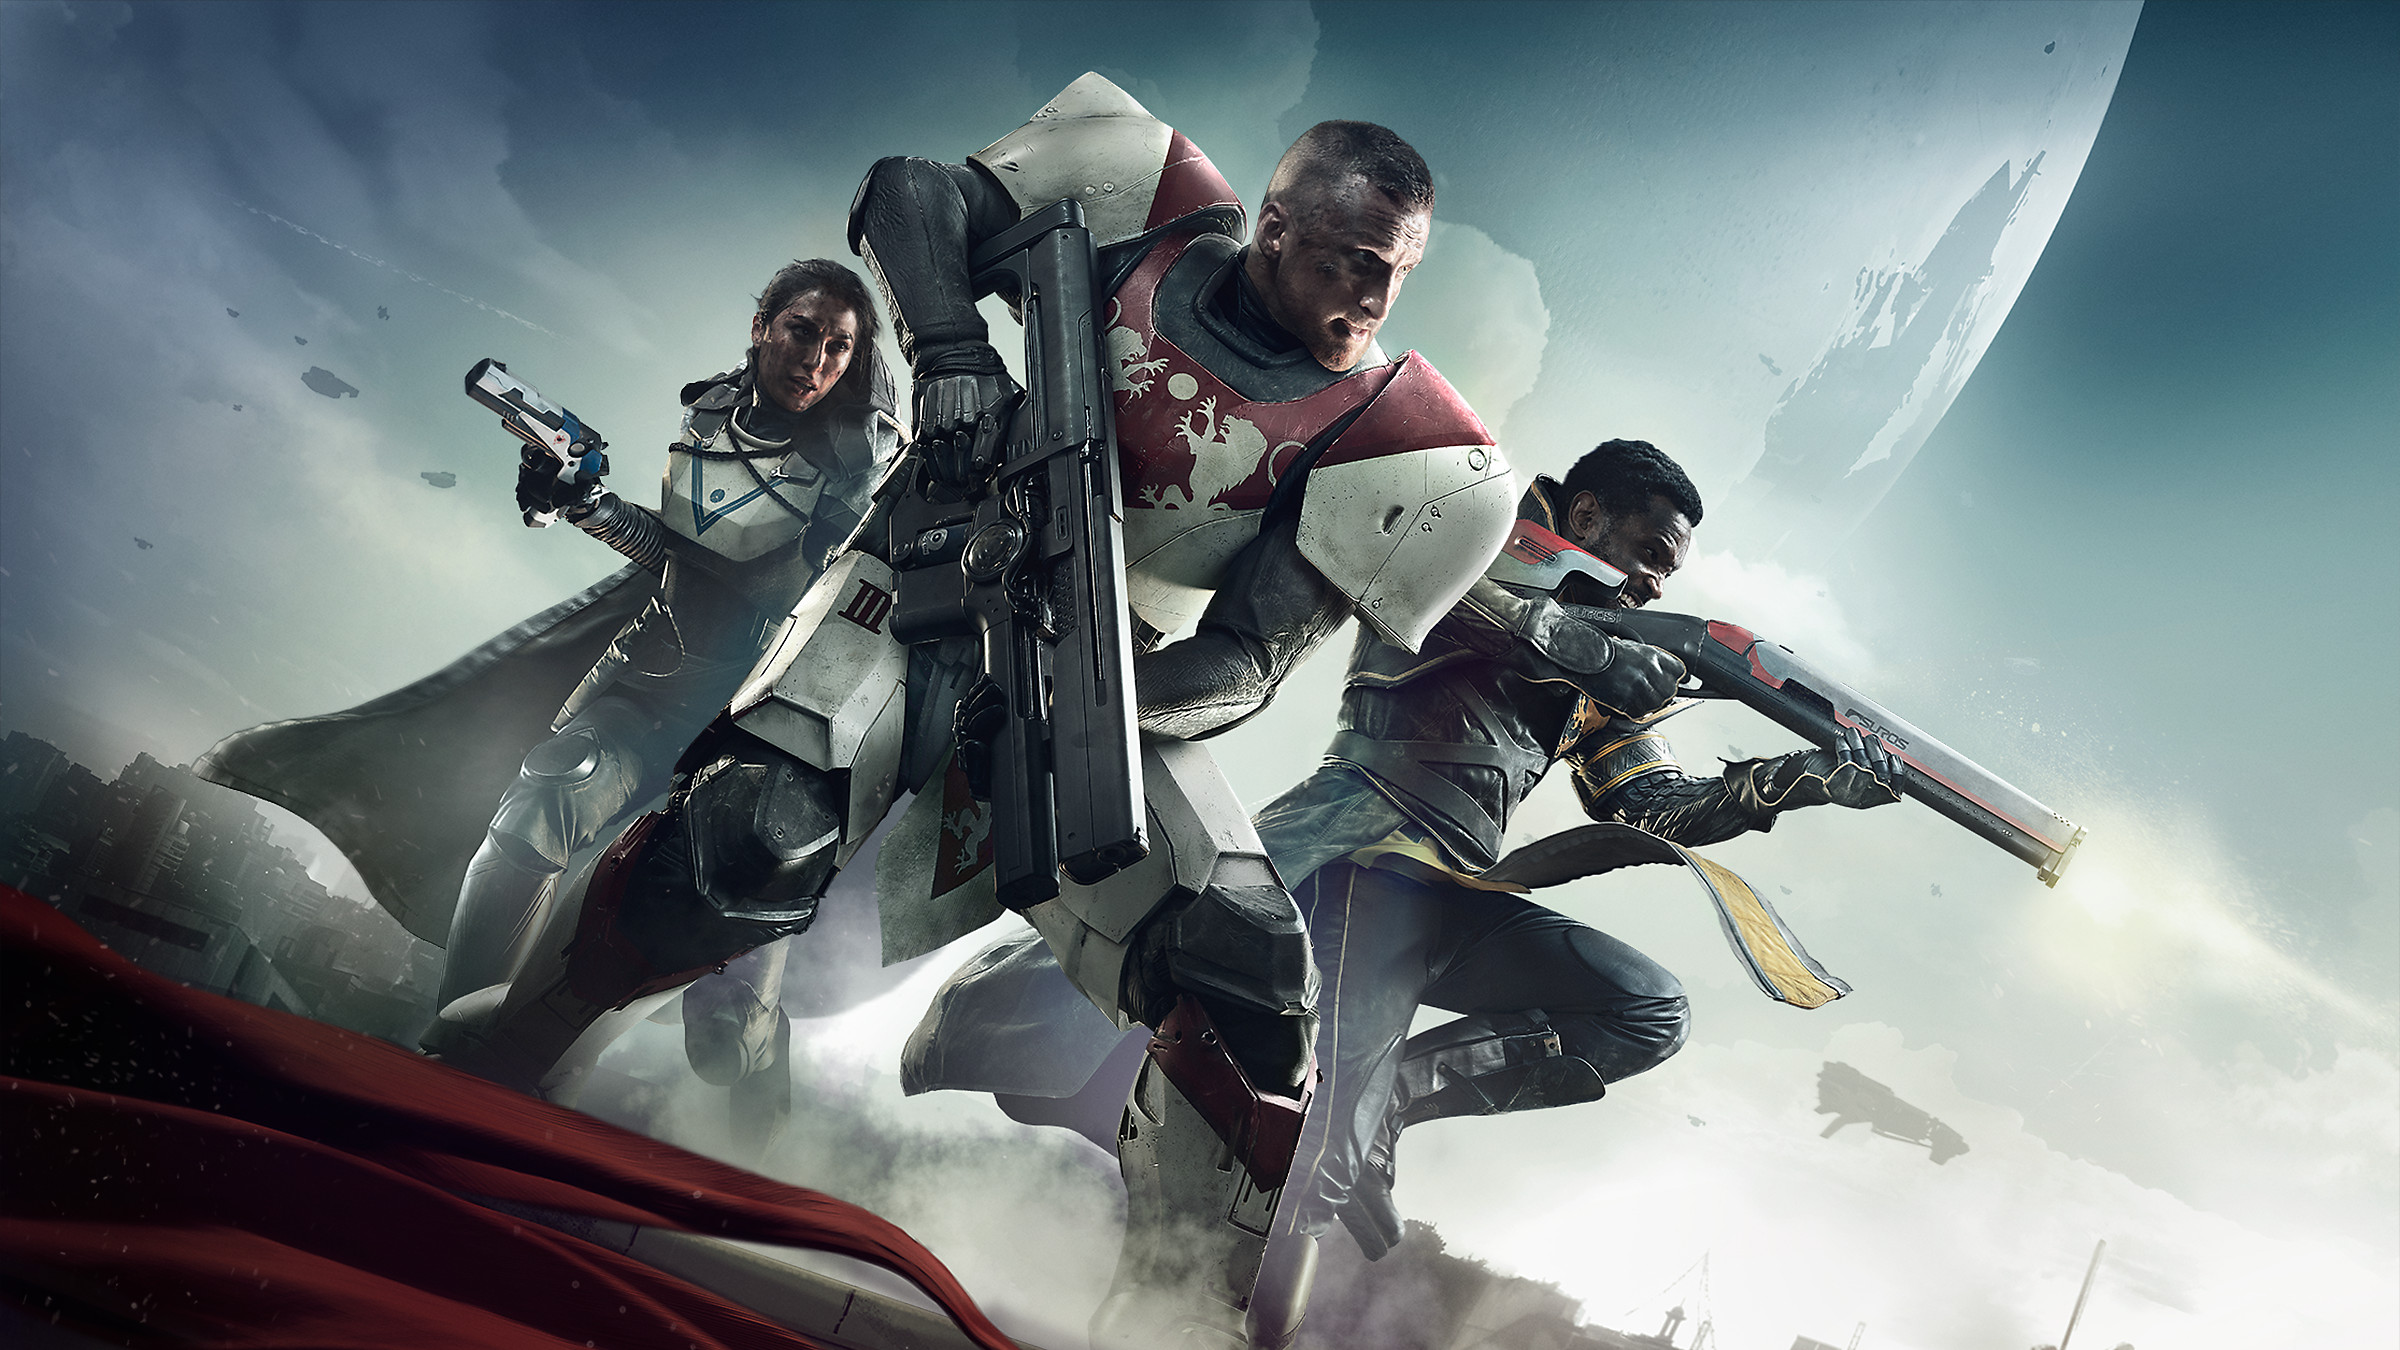 Bungie To Take Development Rights Back For Destiny